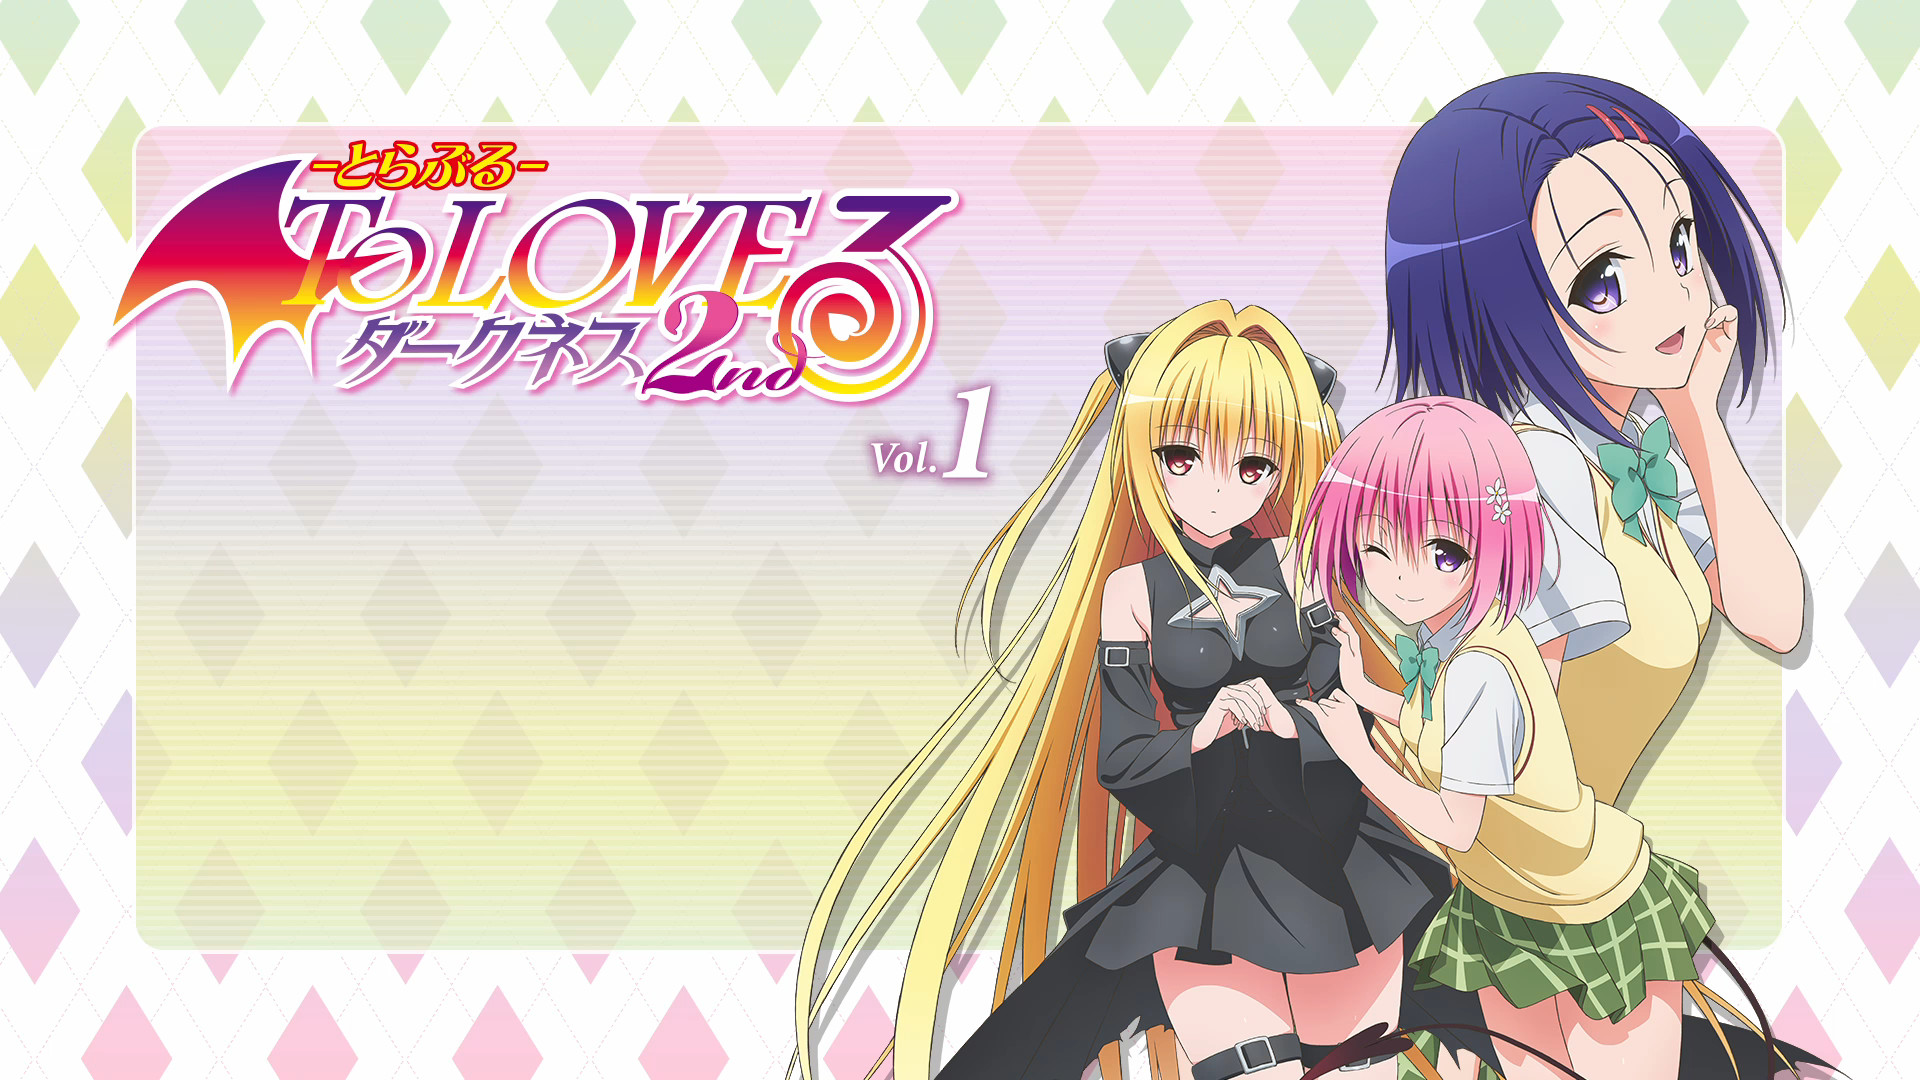 1920x1080 Anime - To Love-Ru: Darkness Haruna Sairenji Momo Velia Deviluke Golden  Darkness Wallpaper